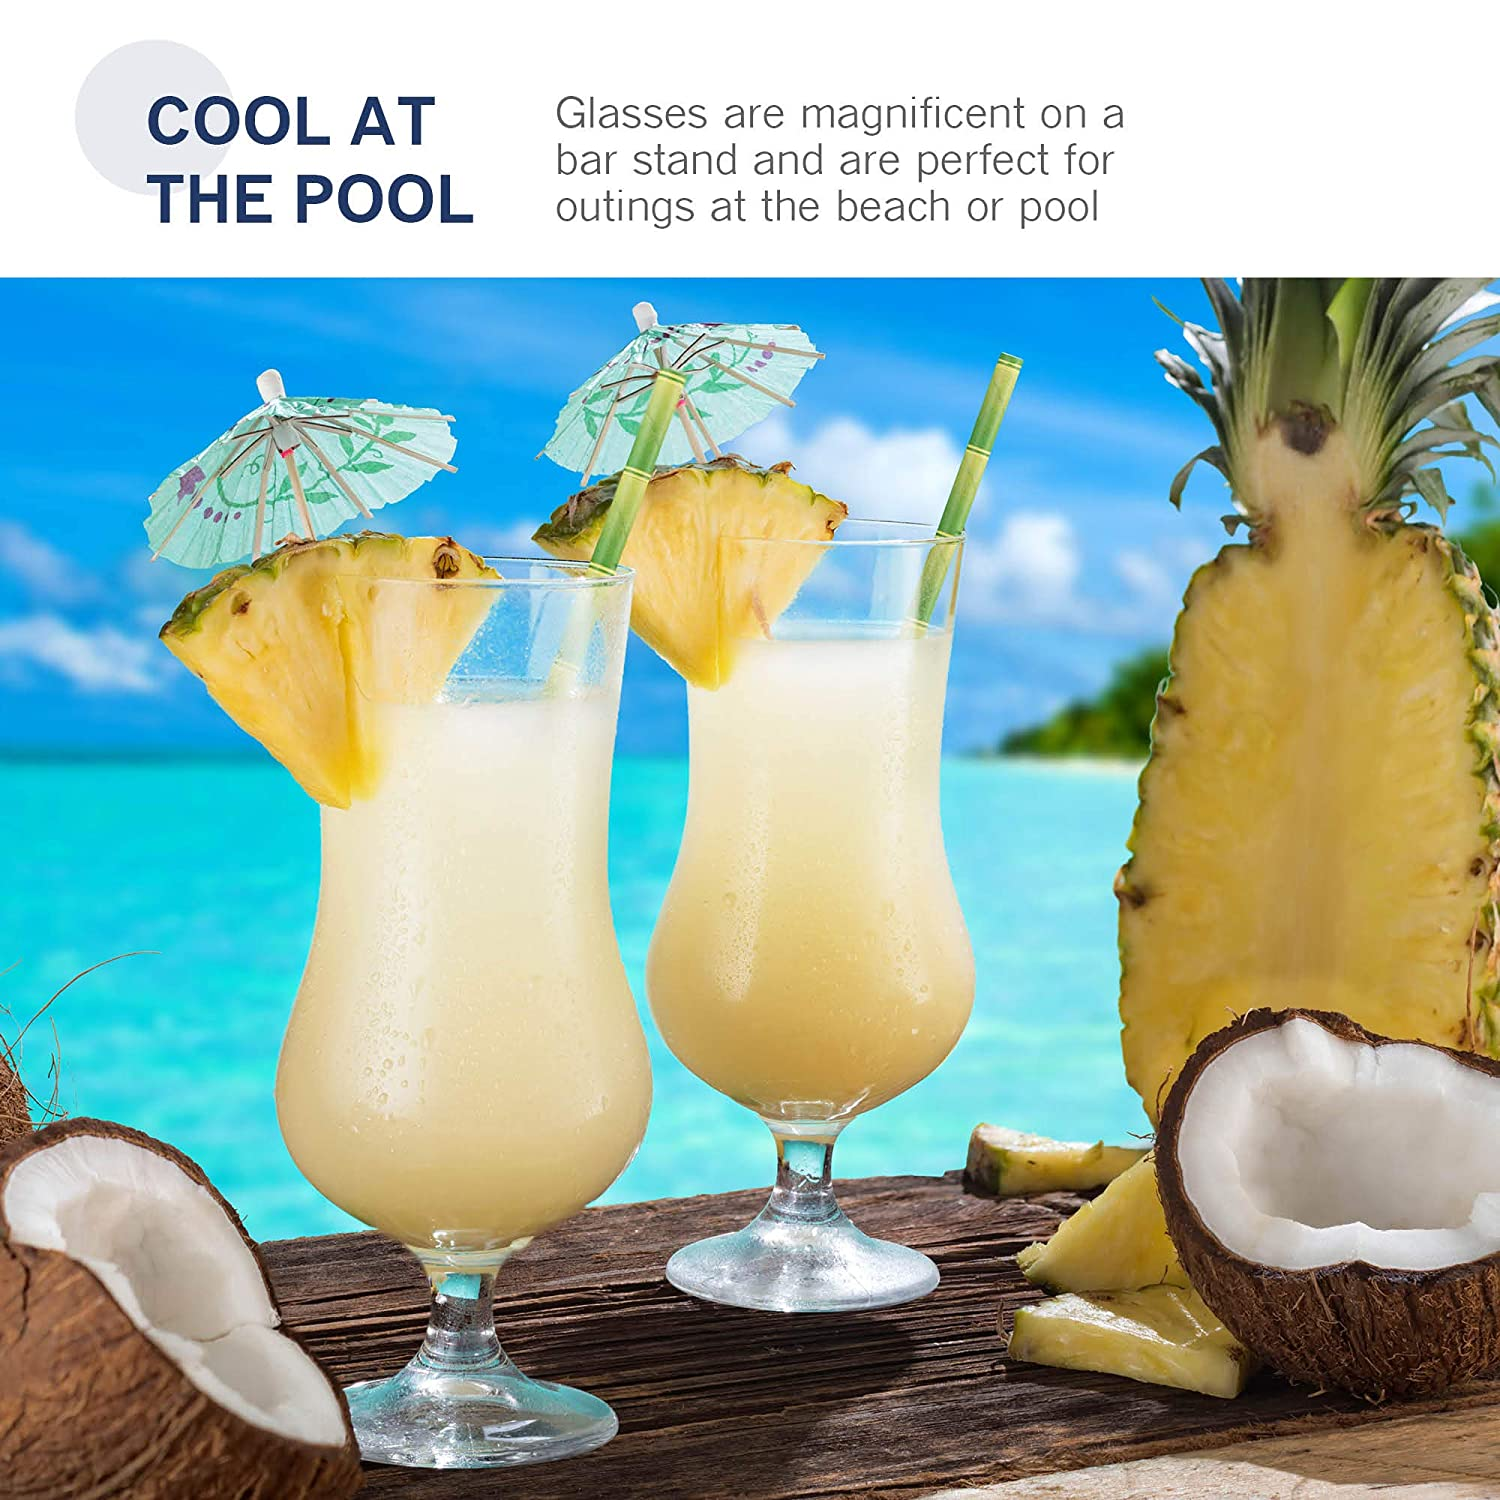 Juice Hurricane Glasses for Drinking Full Bodied Beer Water Beer Glasses Tulip Shaped 4 Pack Lead-Free Bar Glass Italian Crafted Cocktail Glasses. Bormioli Rocco 17 Ounce Pina Colada Glass